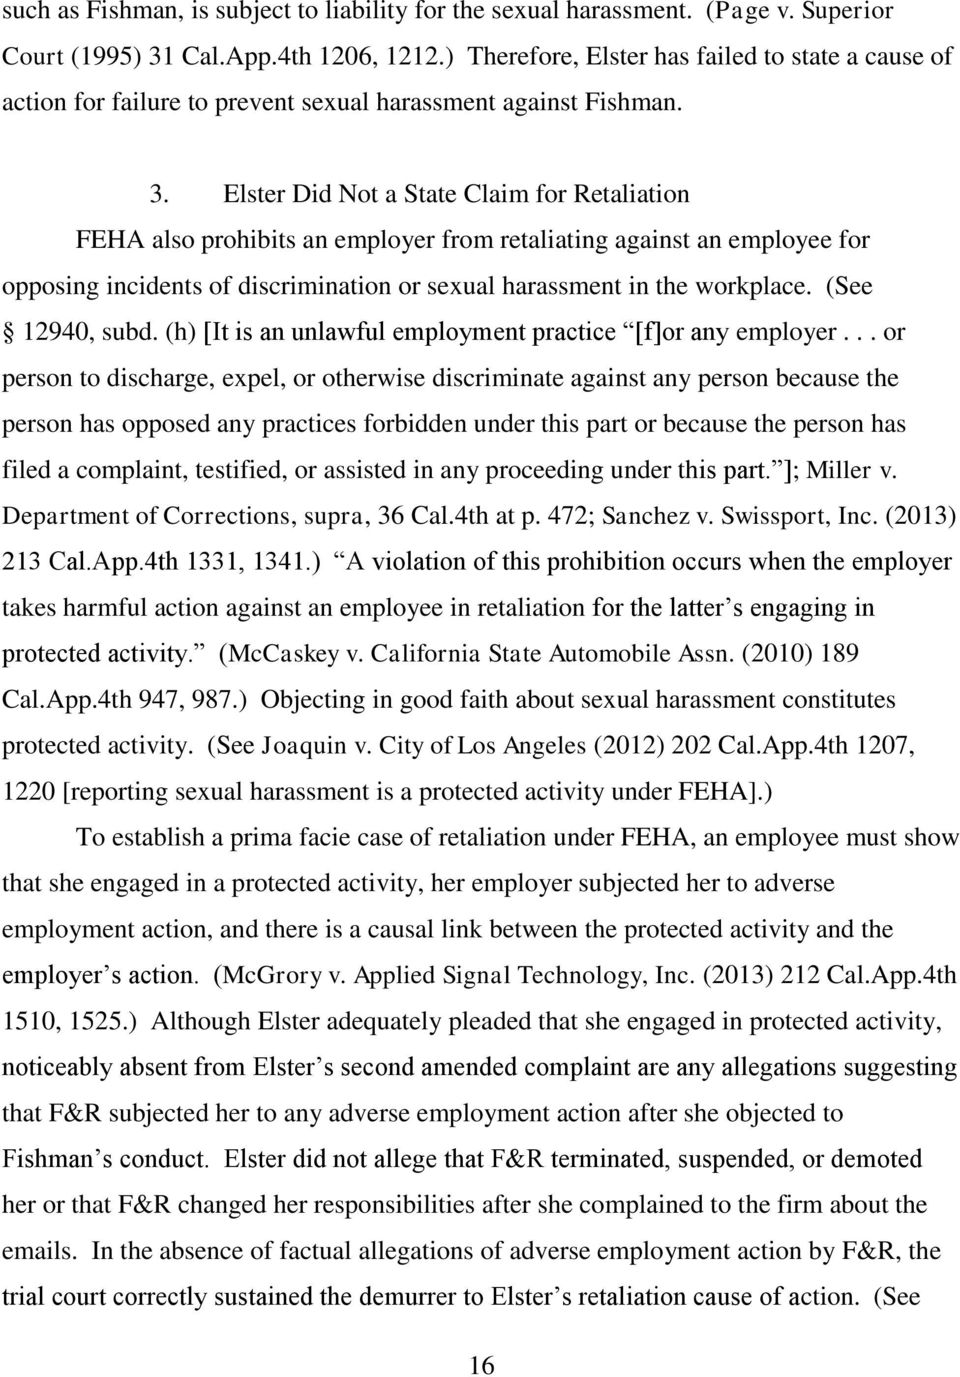 Elster Did Not a State Claim for Retaliation FEHA also prohibits an employer from retaliating against an employee for opposing incidents of discrimination or sexual harassment in the workplace.